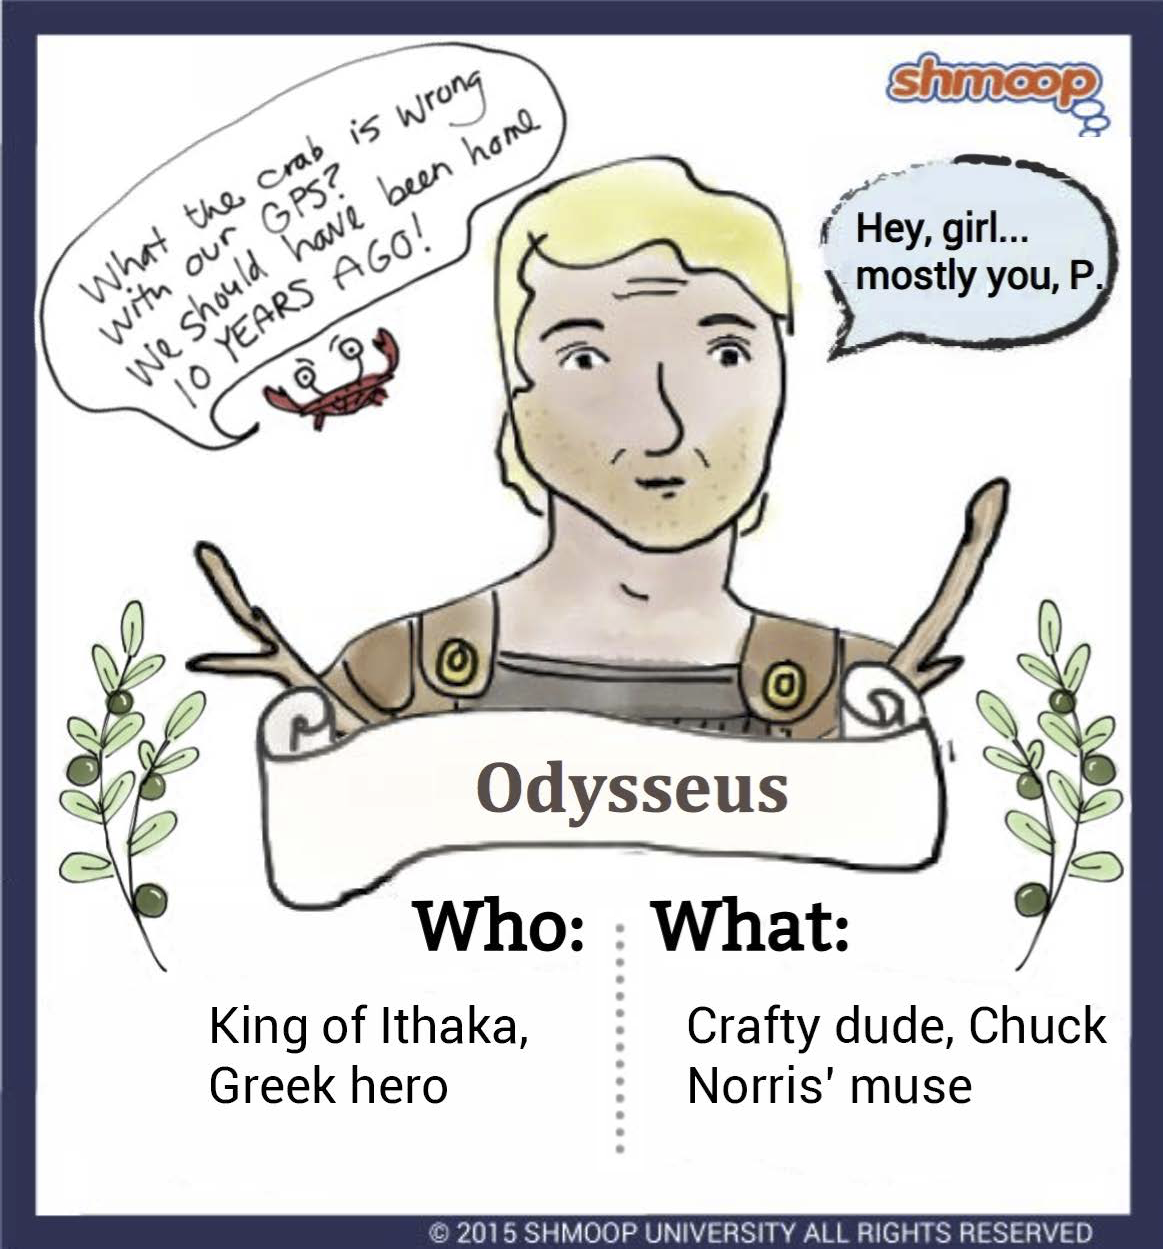 the heroic journey of odysseus essay Odysseus research papers look at the main character of homer's classic tale of the odyssey commons themes in relation to odysseus include the journey of the hero and the flaws of odysseus.